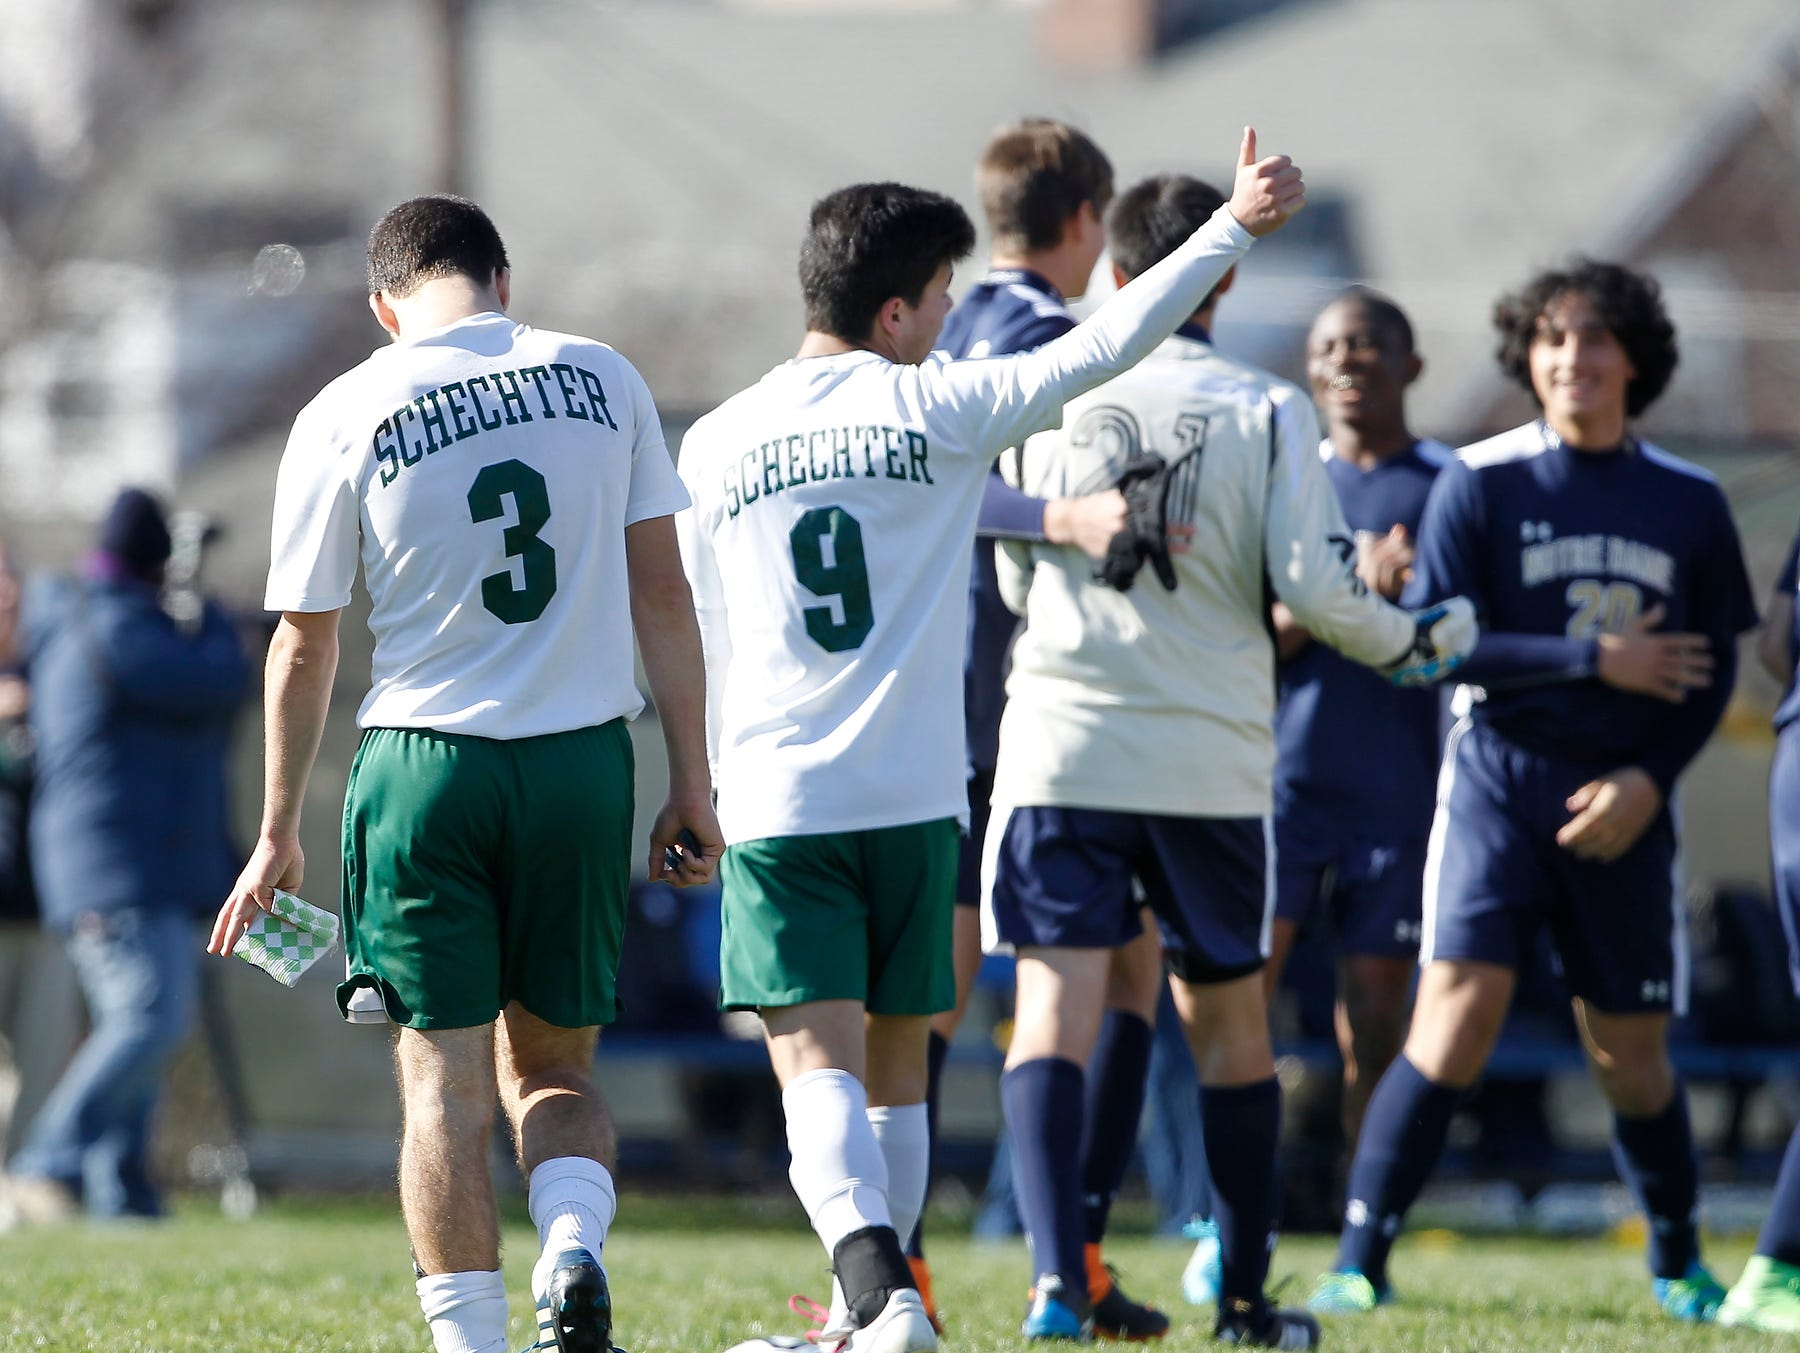 """Solomon Schechter's Miles Ogihara (9) gives a """"thumbs up"""" to the fans after their 9-1 loss to Notre Dame in the NYSPHSAA boys class C soccer final at Middletown High School on Sunday, Nov. 15, 2015."""